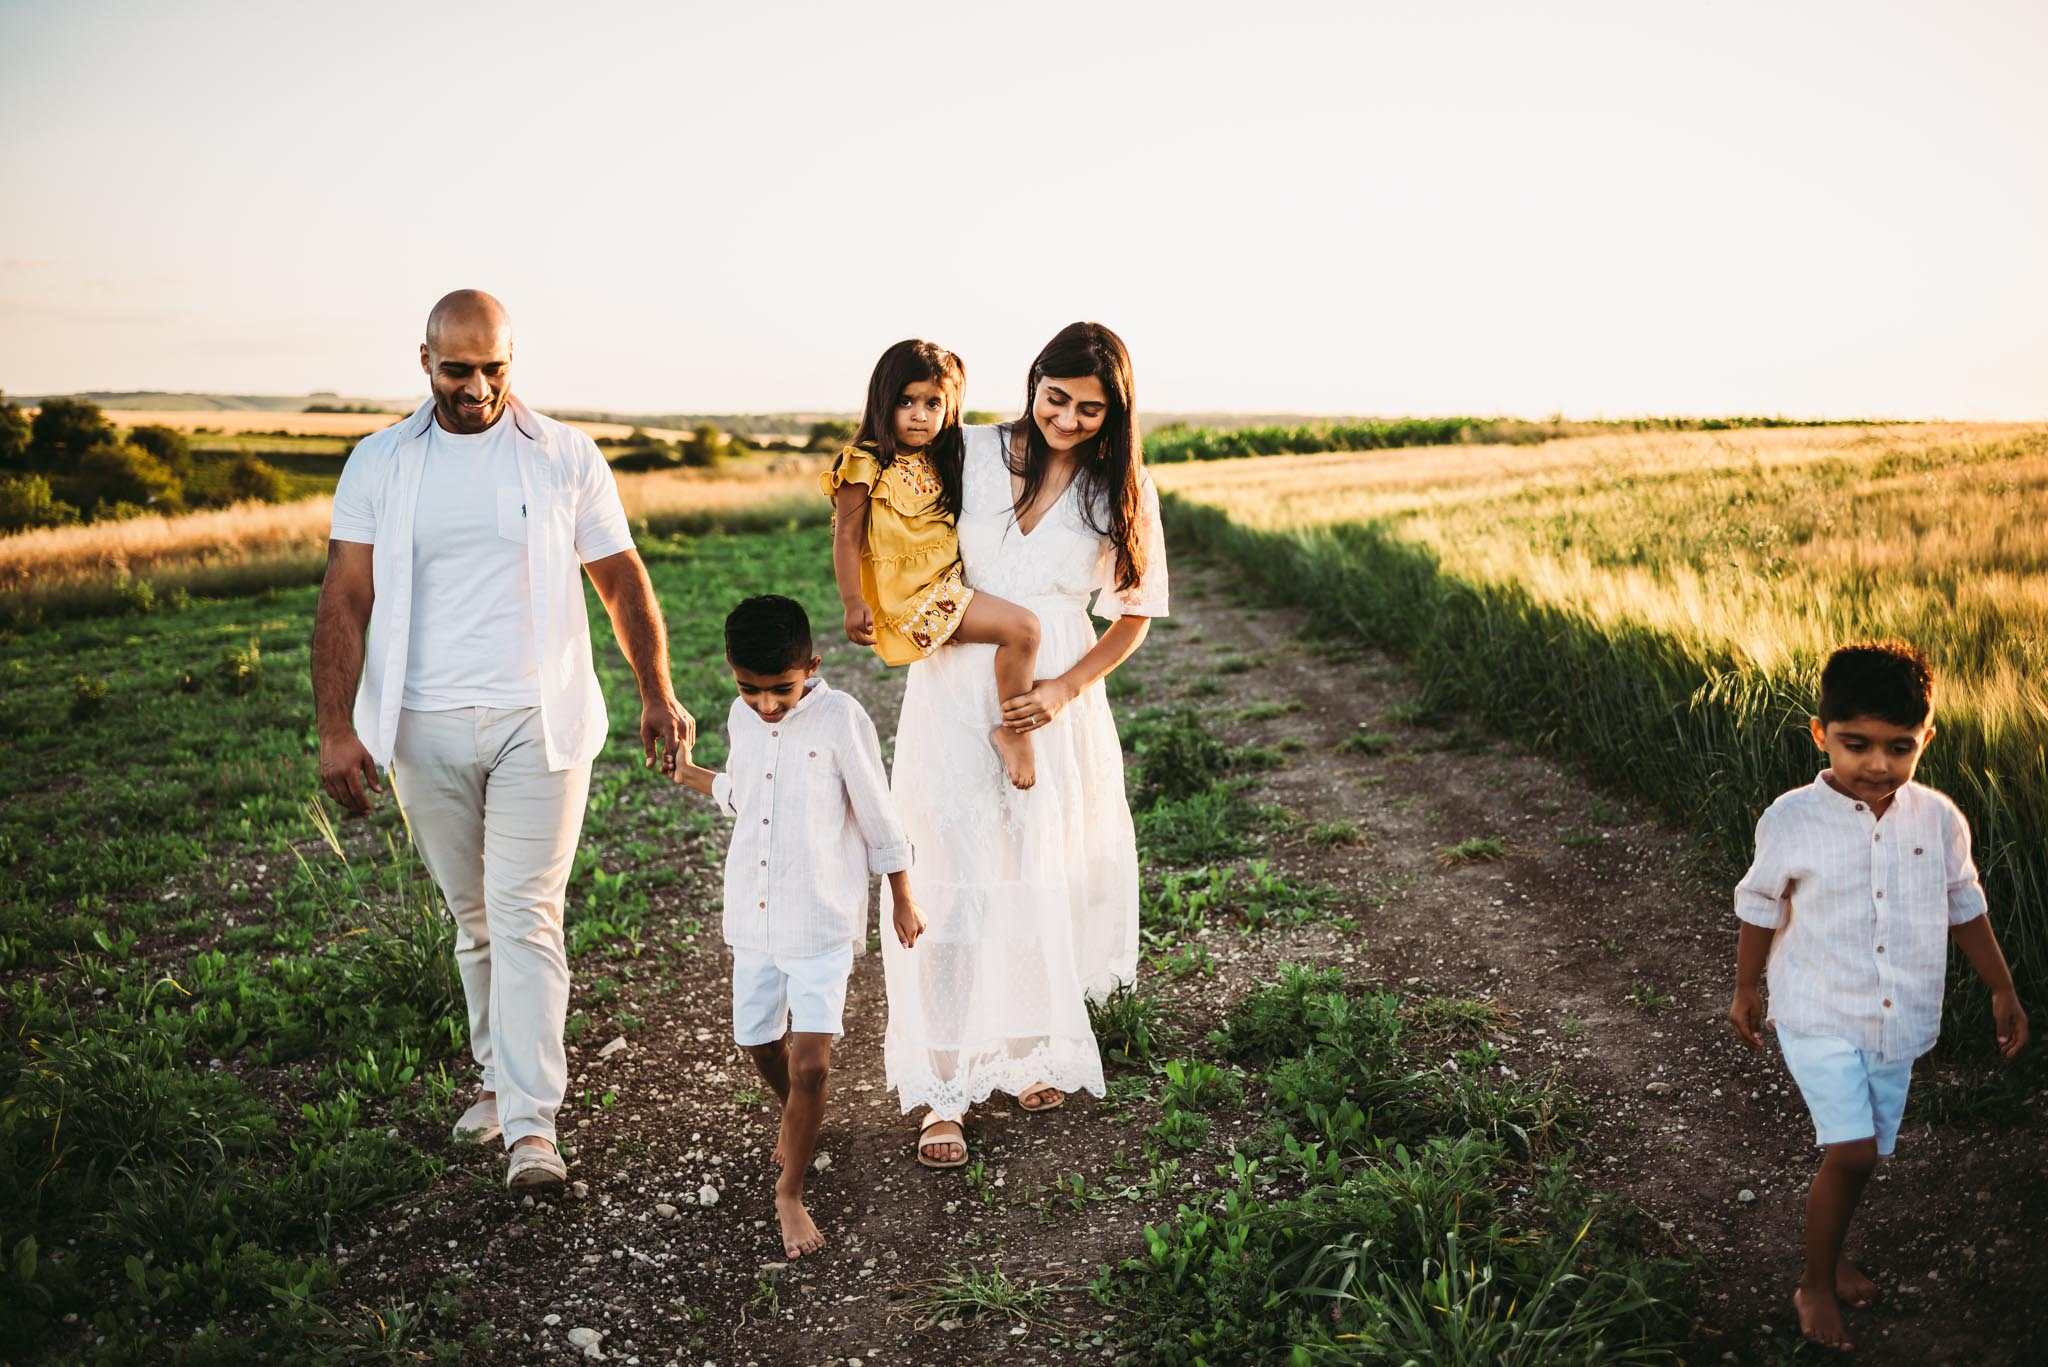 family of 5 walking hand in hand near a barley field during sunset